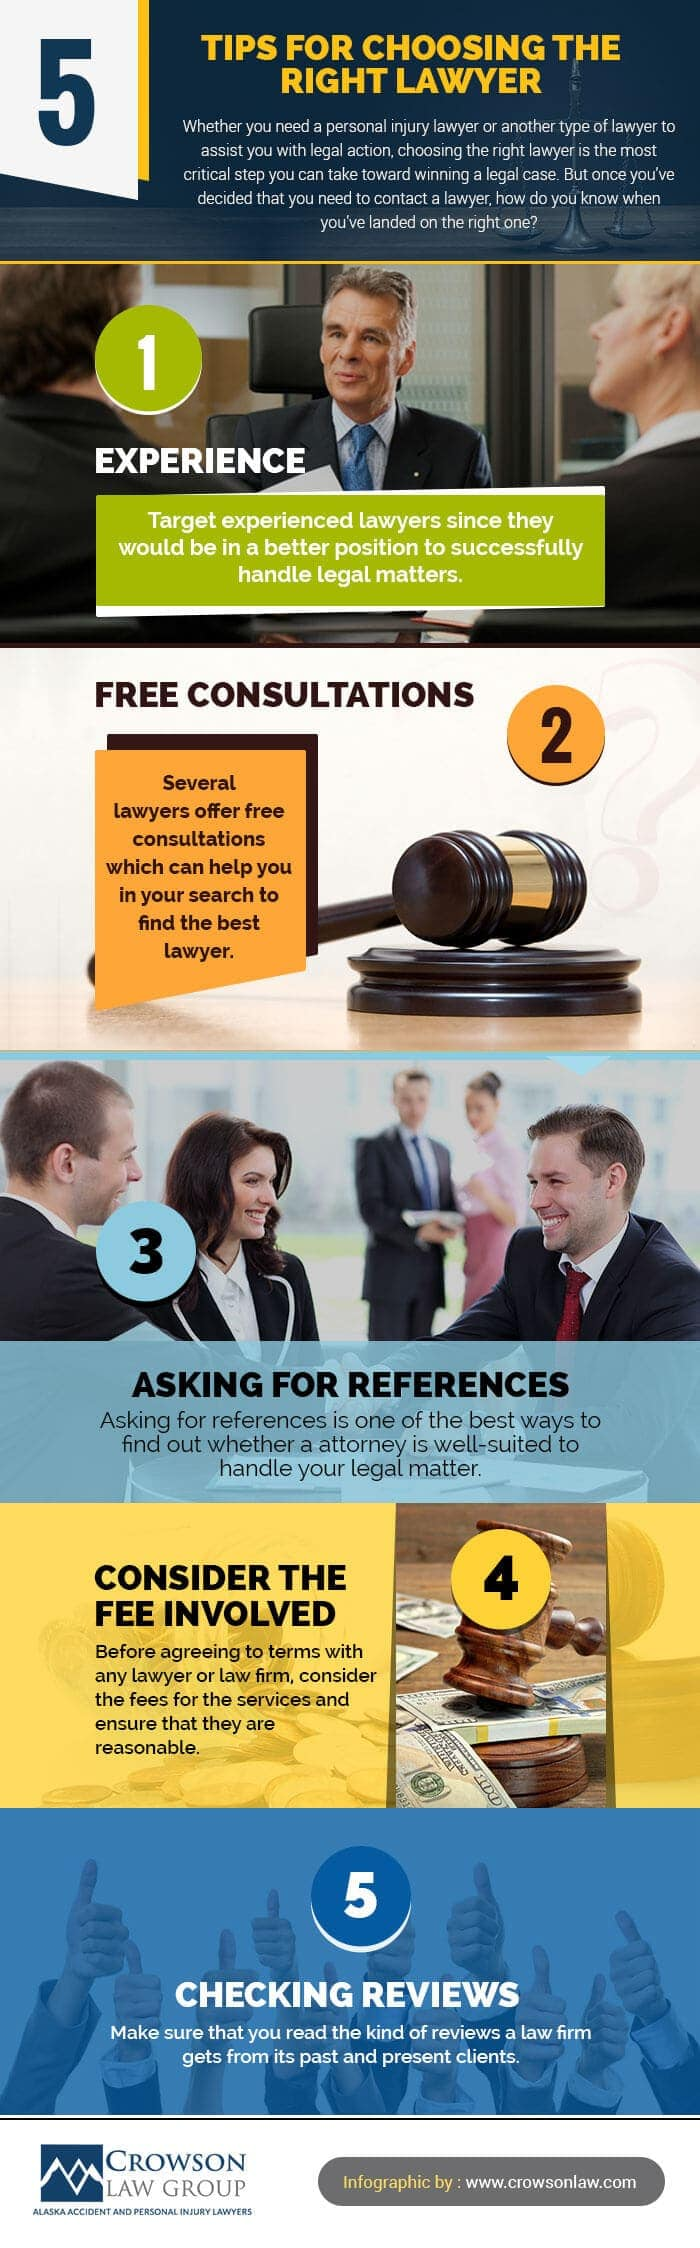 5 Tips For Choosing the Right Lawyer